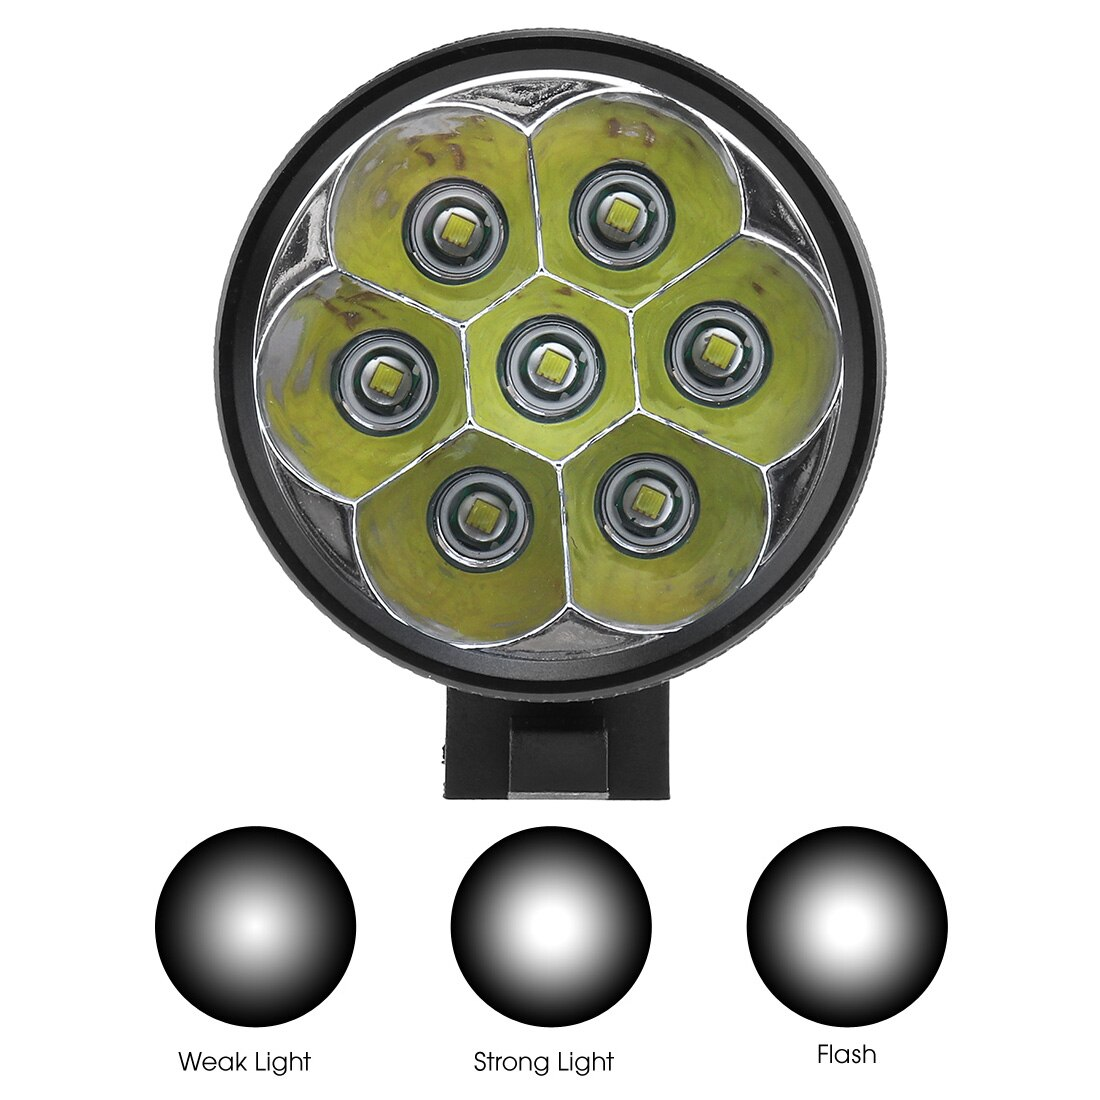 SecurityIng Bicycle Headlights Bike T6 LED Front Head Headlight Bicycle Torch Rechargeable 18650 Battery Pack Lights enlarge